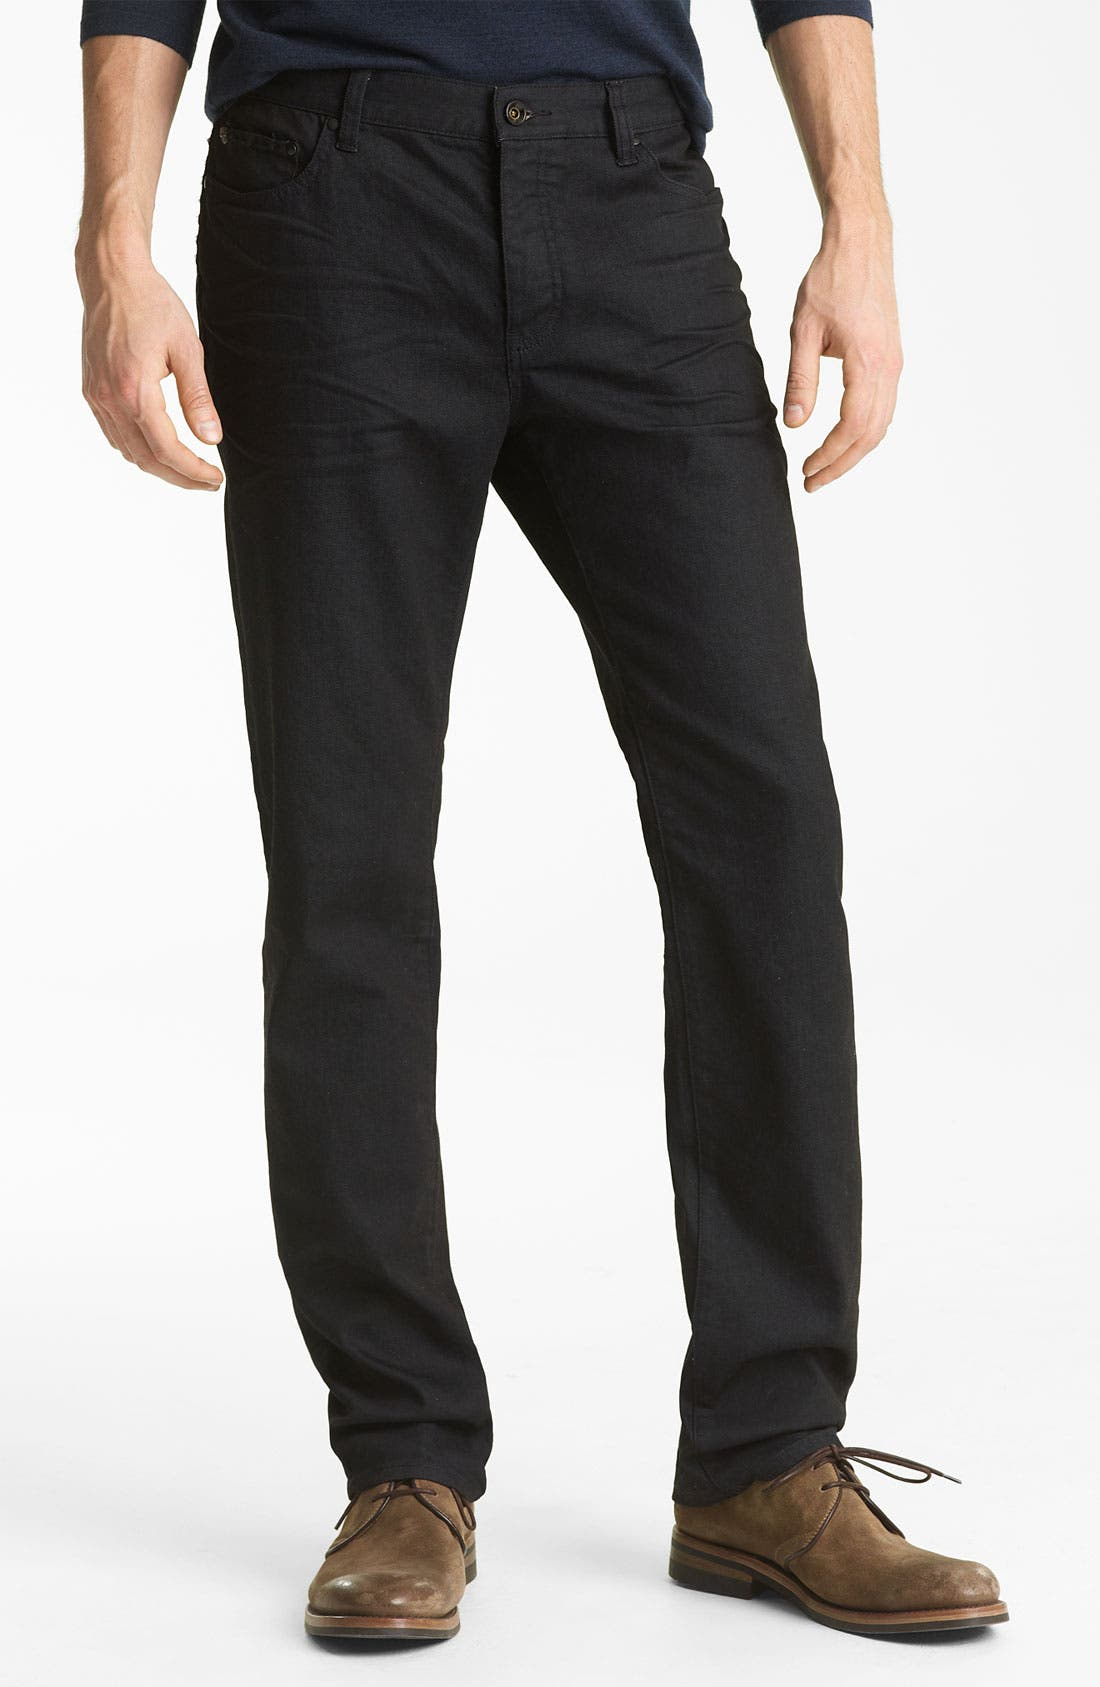 Main Image - John Varvatos Collection Slim Fit Jeans (Navy Wash)